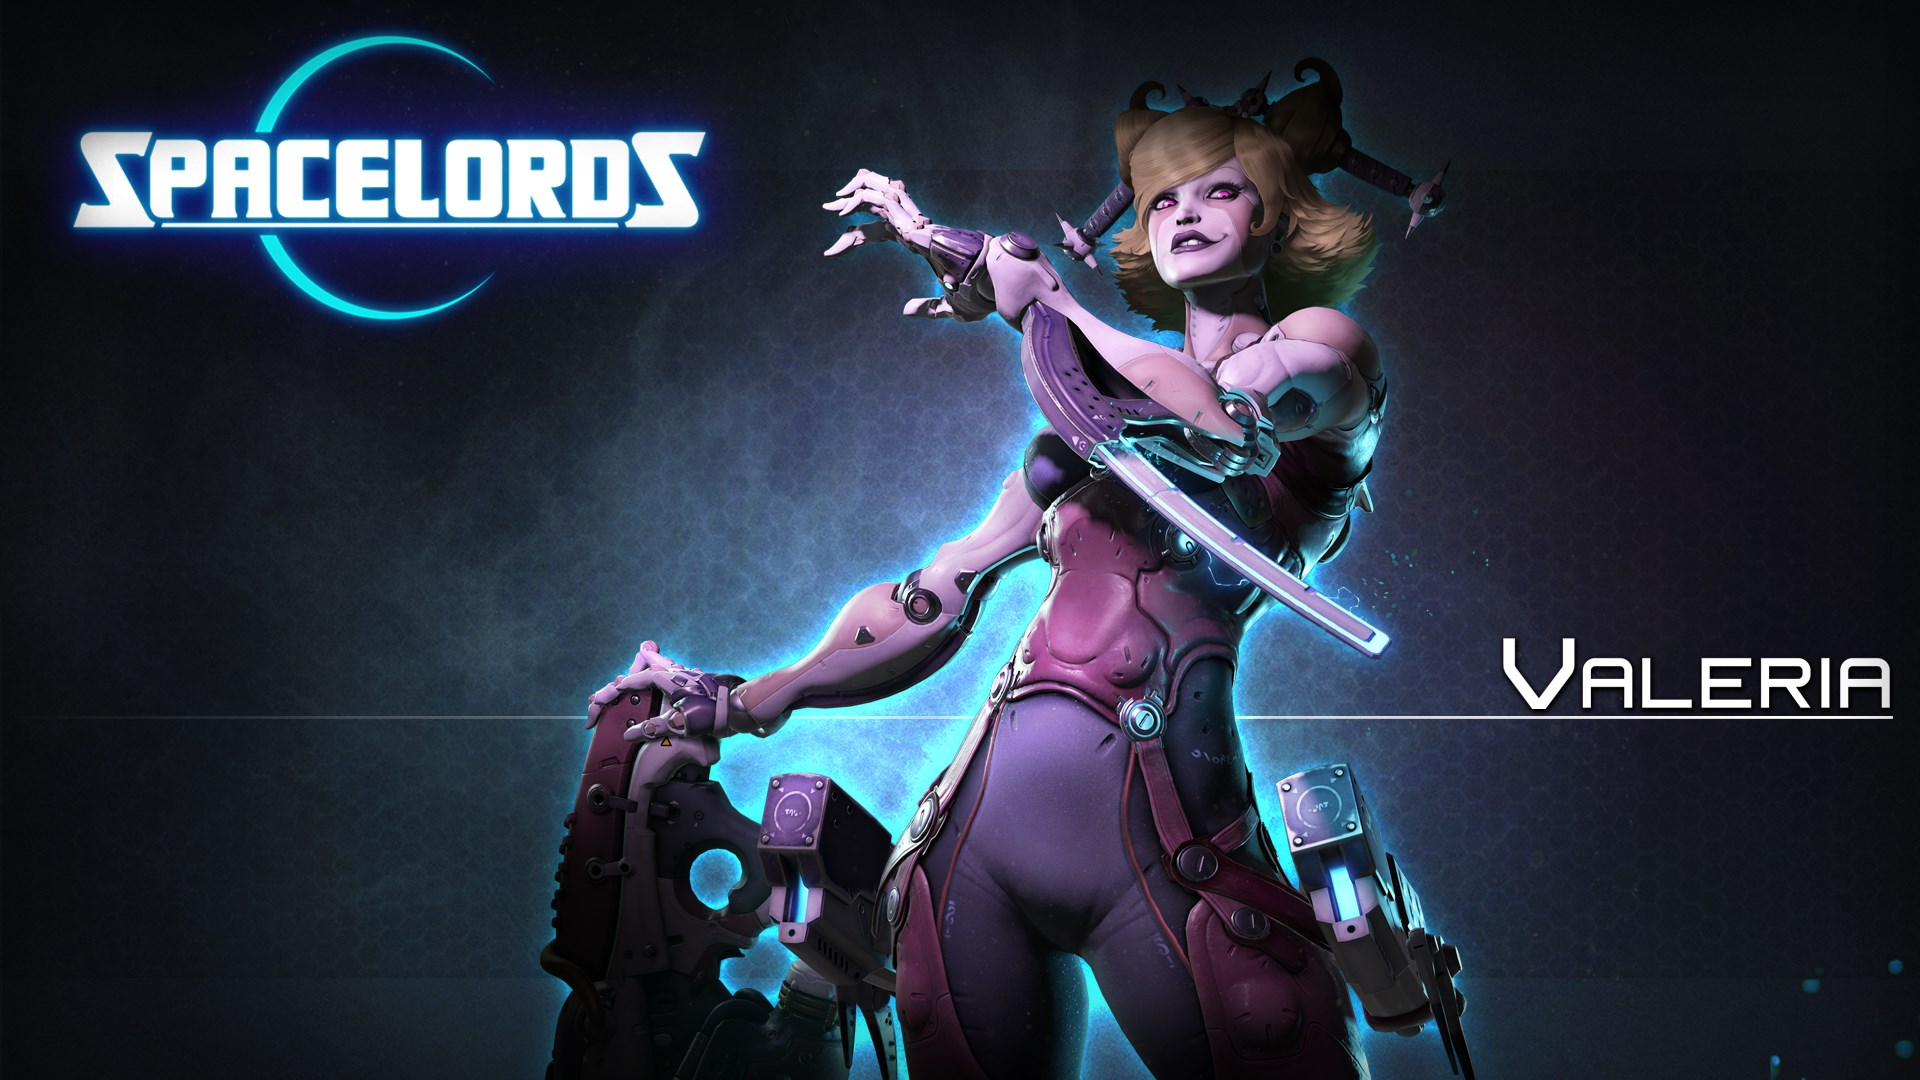 Spacelords - Valeria Premium Character Pack